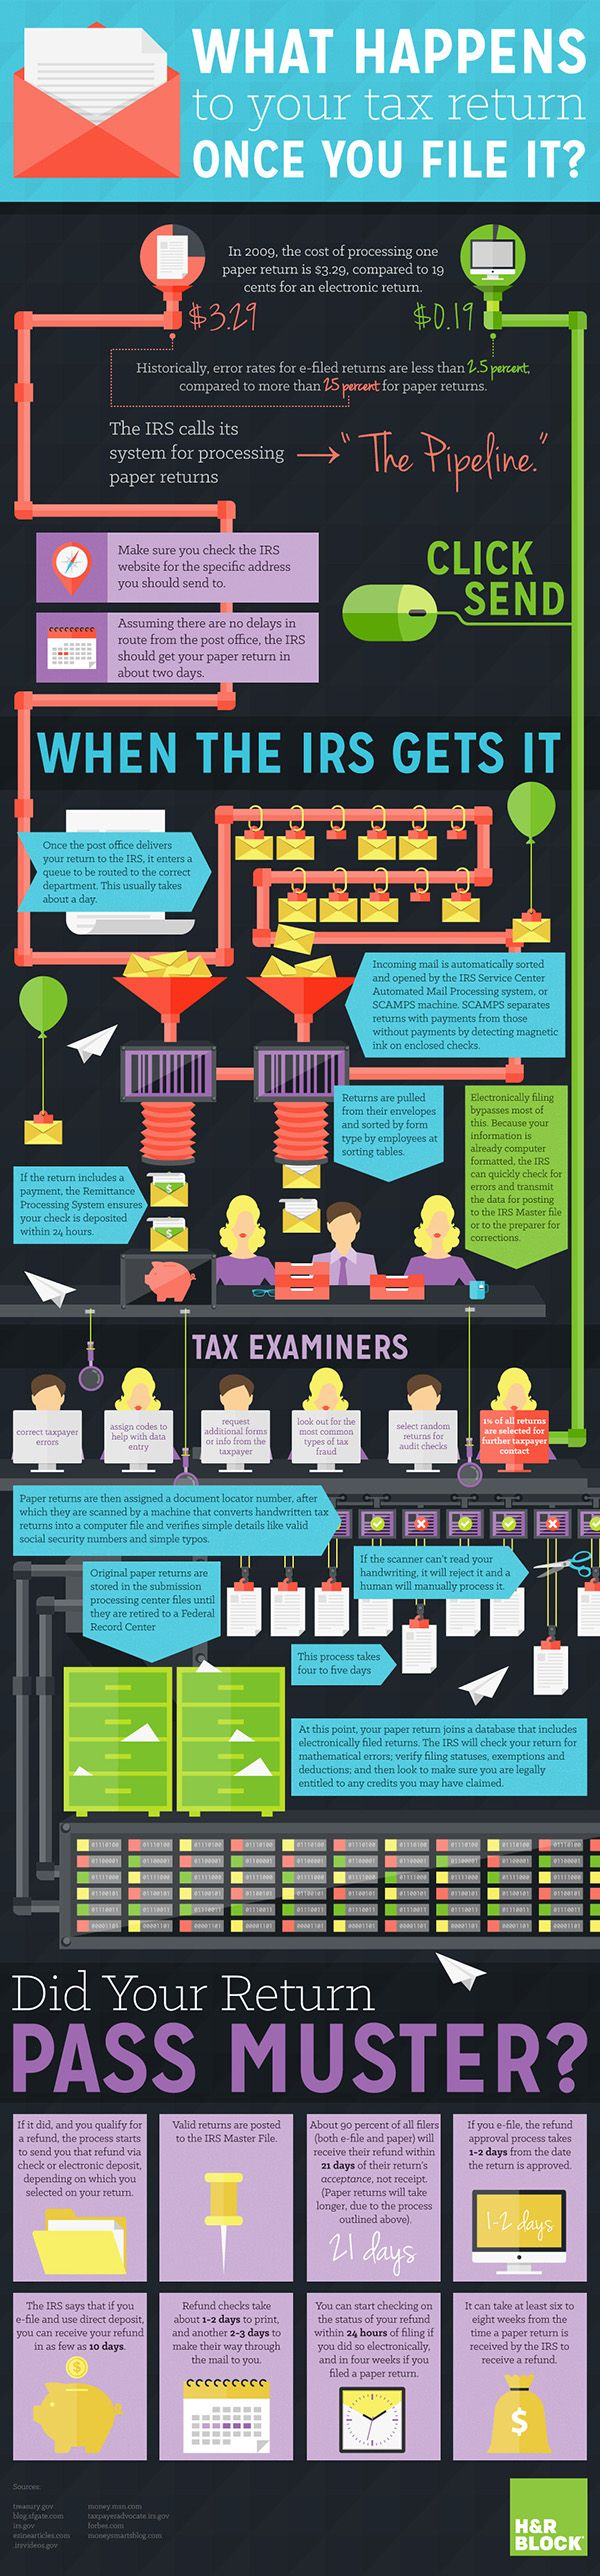 how your tax return becomes a refund